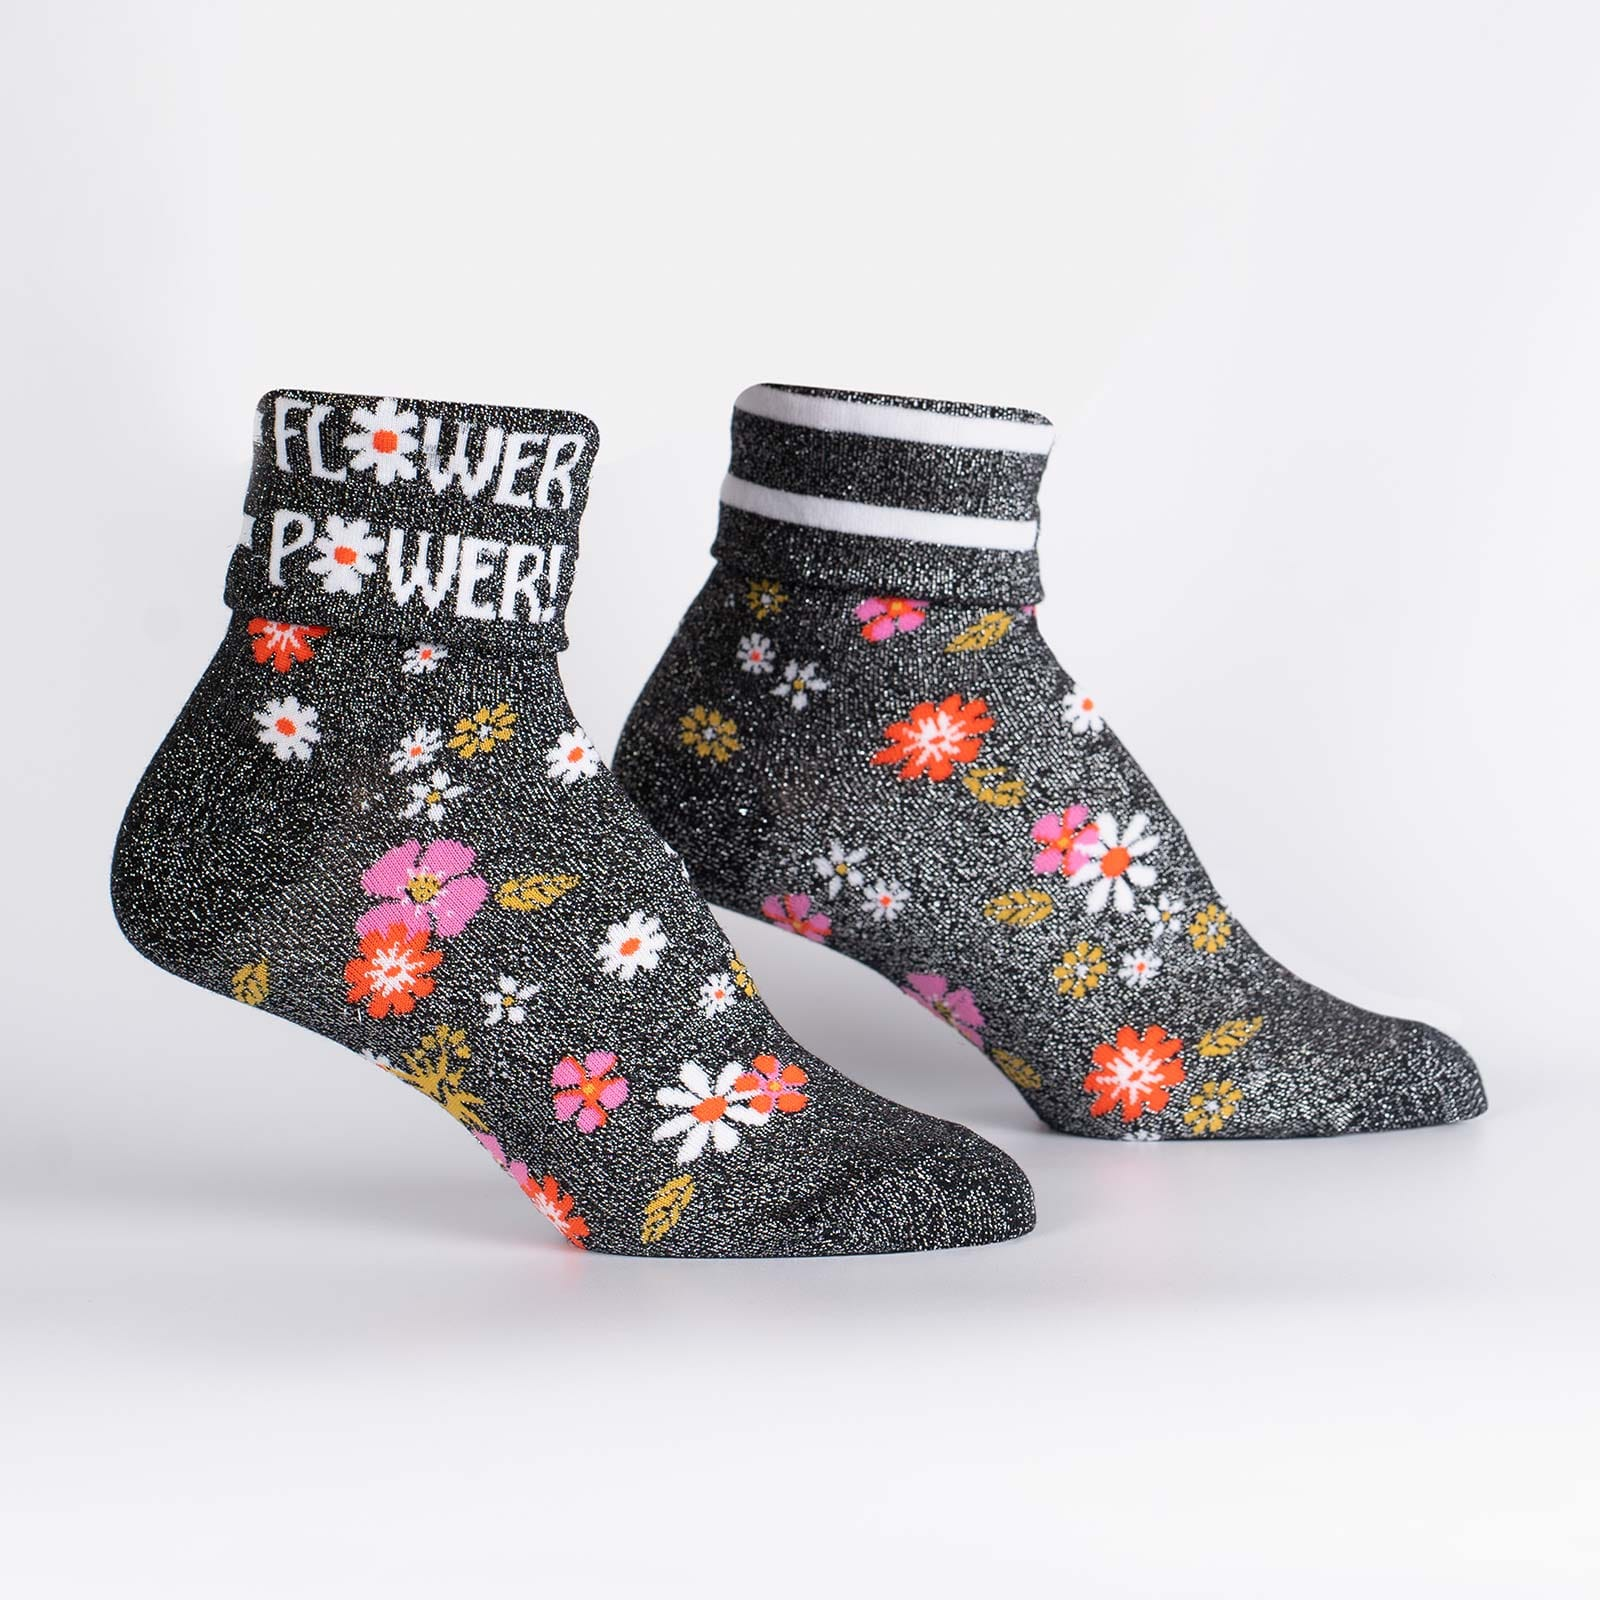 Flower Power Sock It To Me Women's Turn Cuff Crew Socks